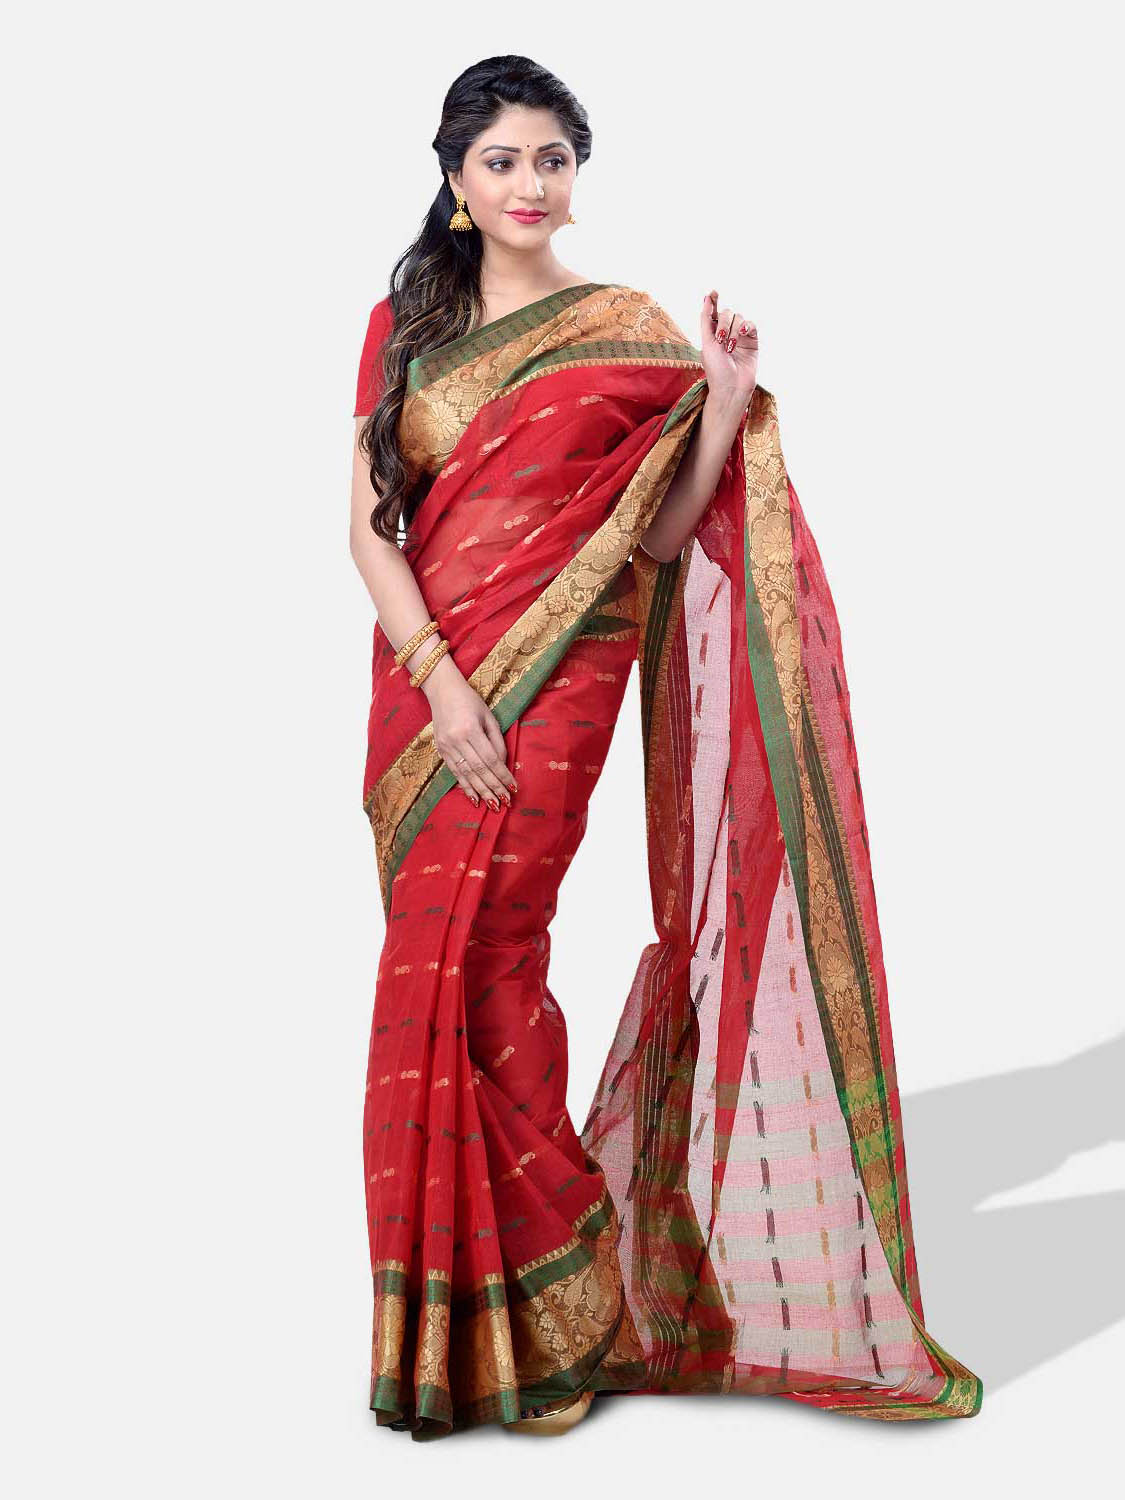 Women`s Santipur Handloom Bengal Tant Saree with Bnegali Cotton Saree Handmade Whole Body Unique Round Design (Red Green)